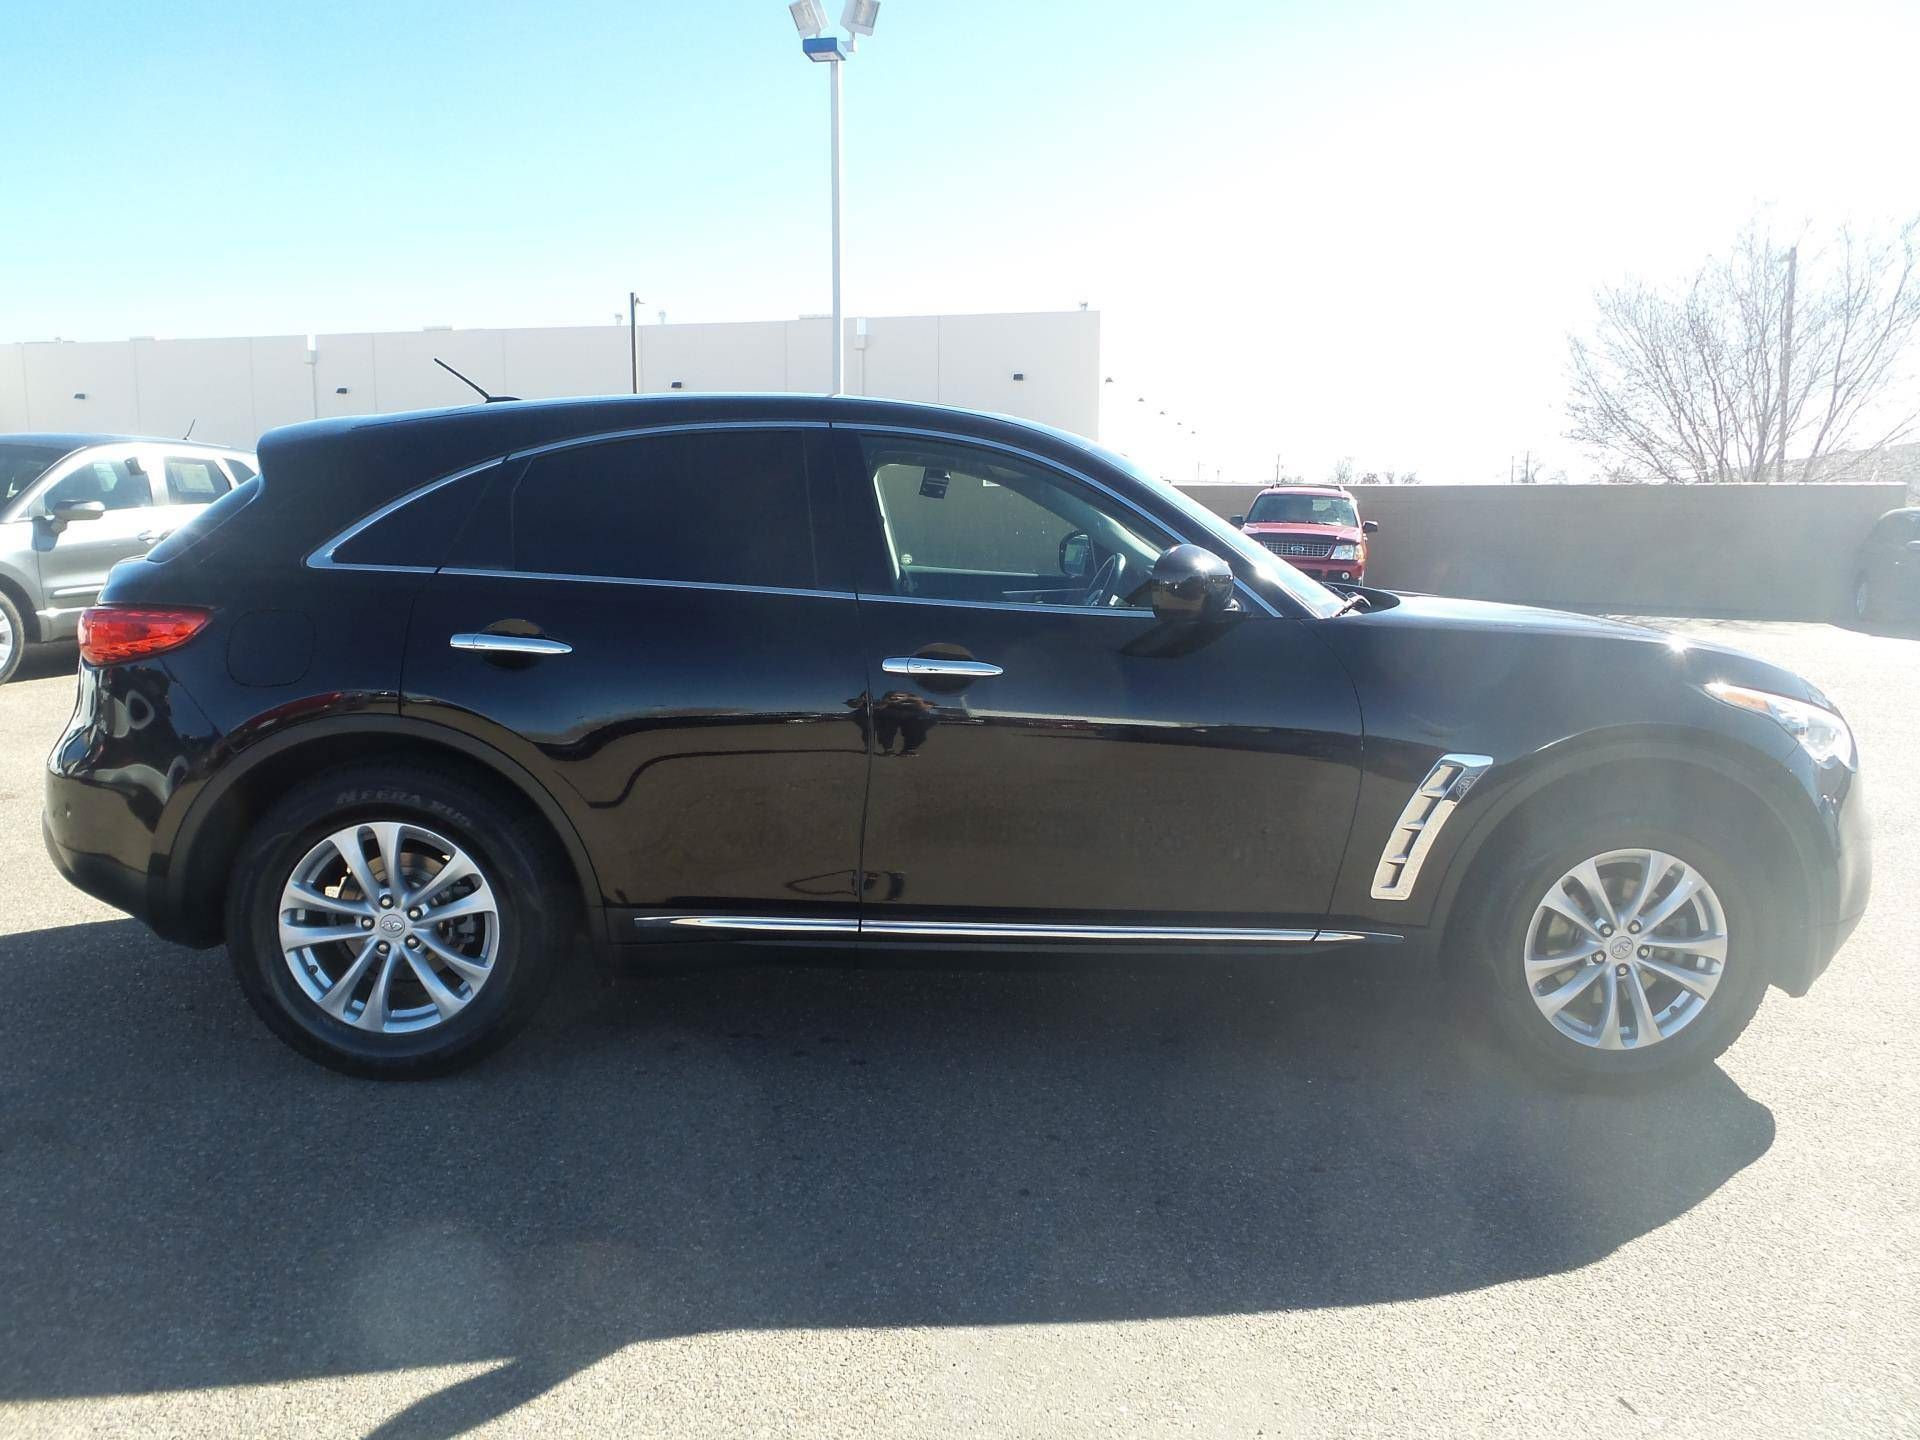 features front price infinity exterior base side suv used photos view reviews infiniti